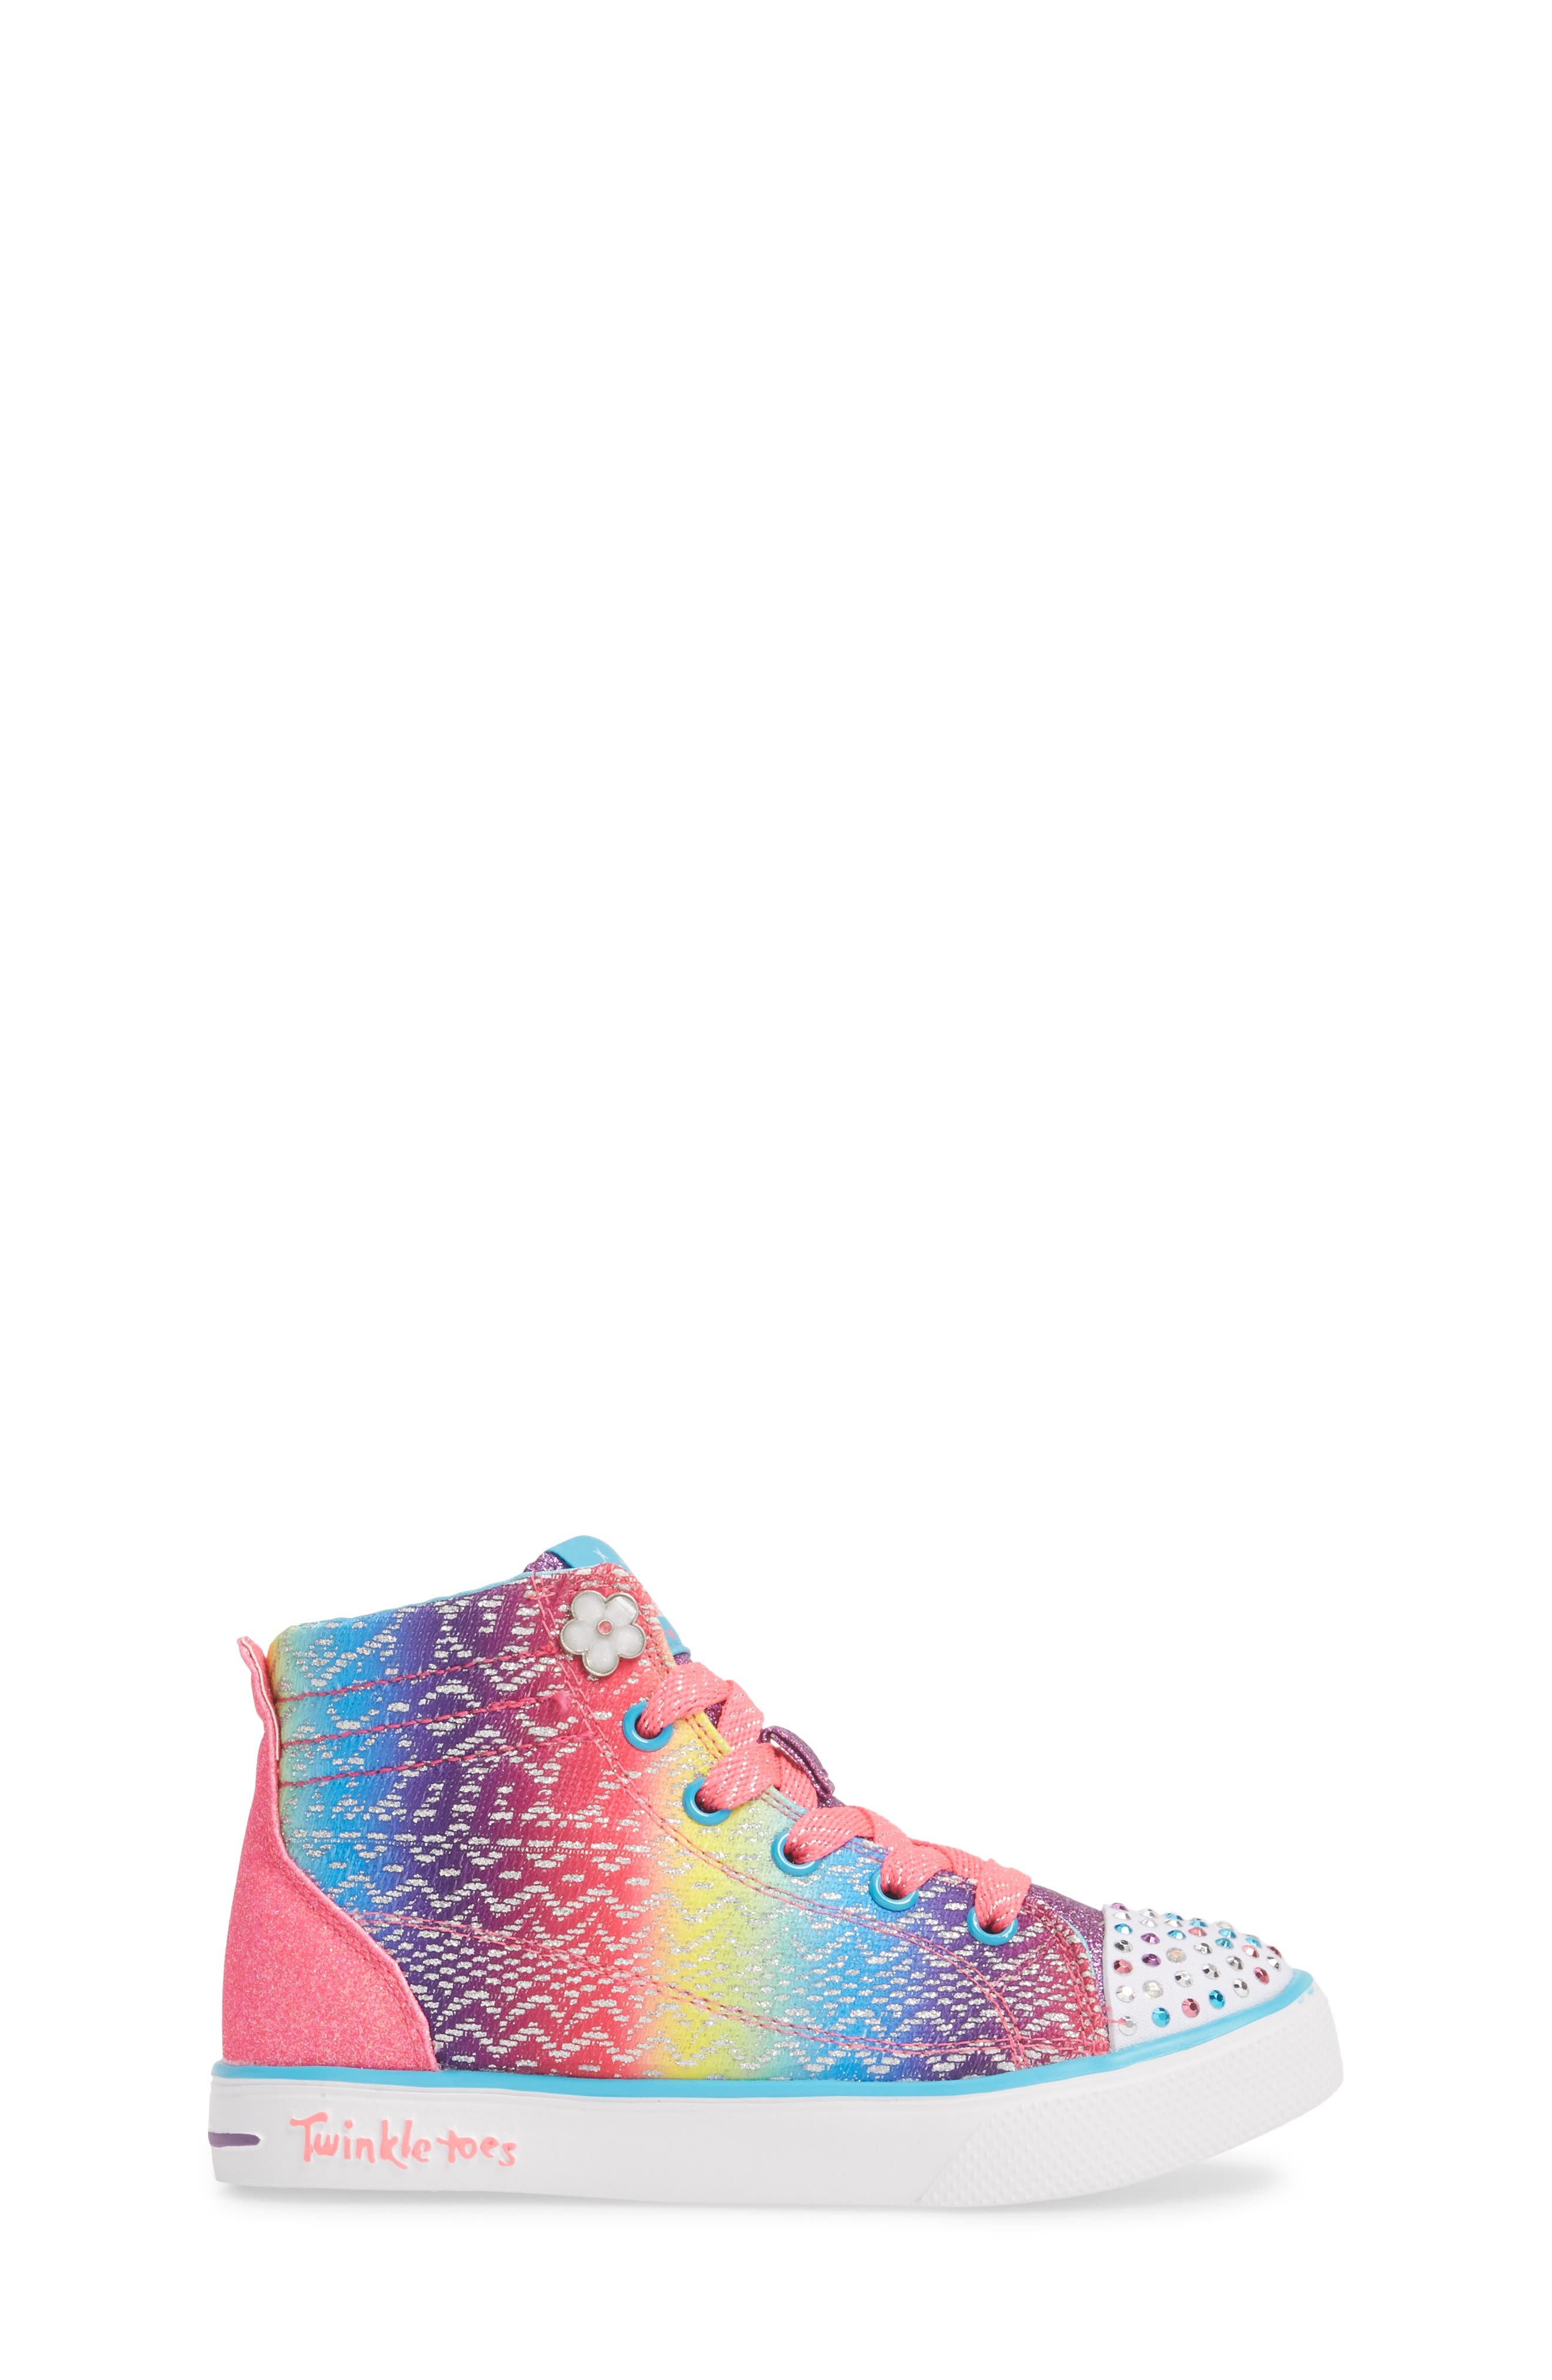 Twinkle Toes Breeze 2.0 Light-Up High Top Sneaker,                             Alternate thumbnail 3, color,                             484